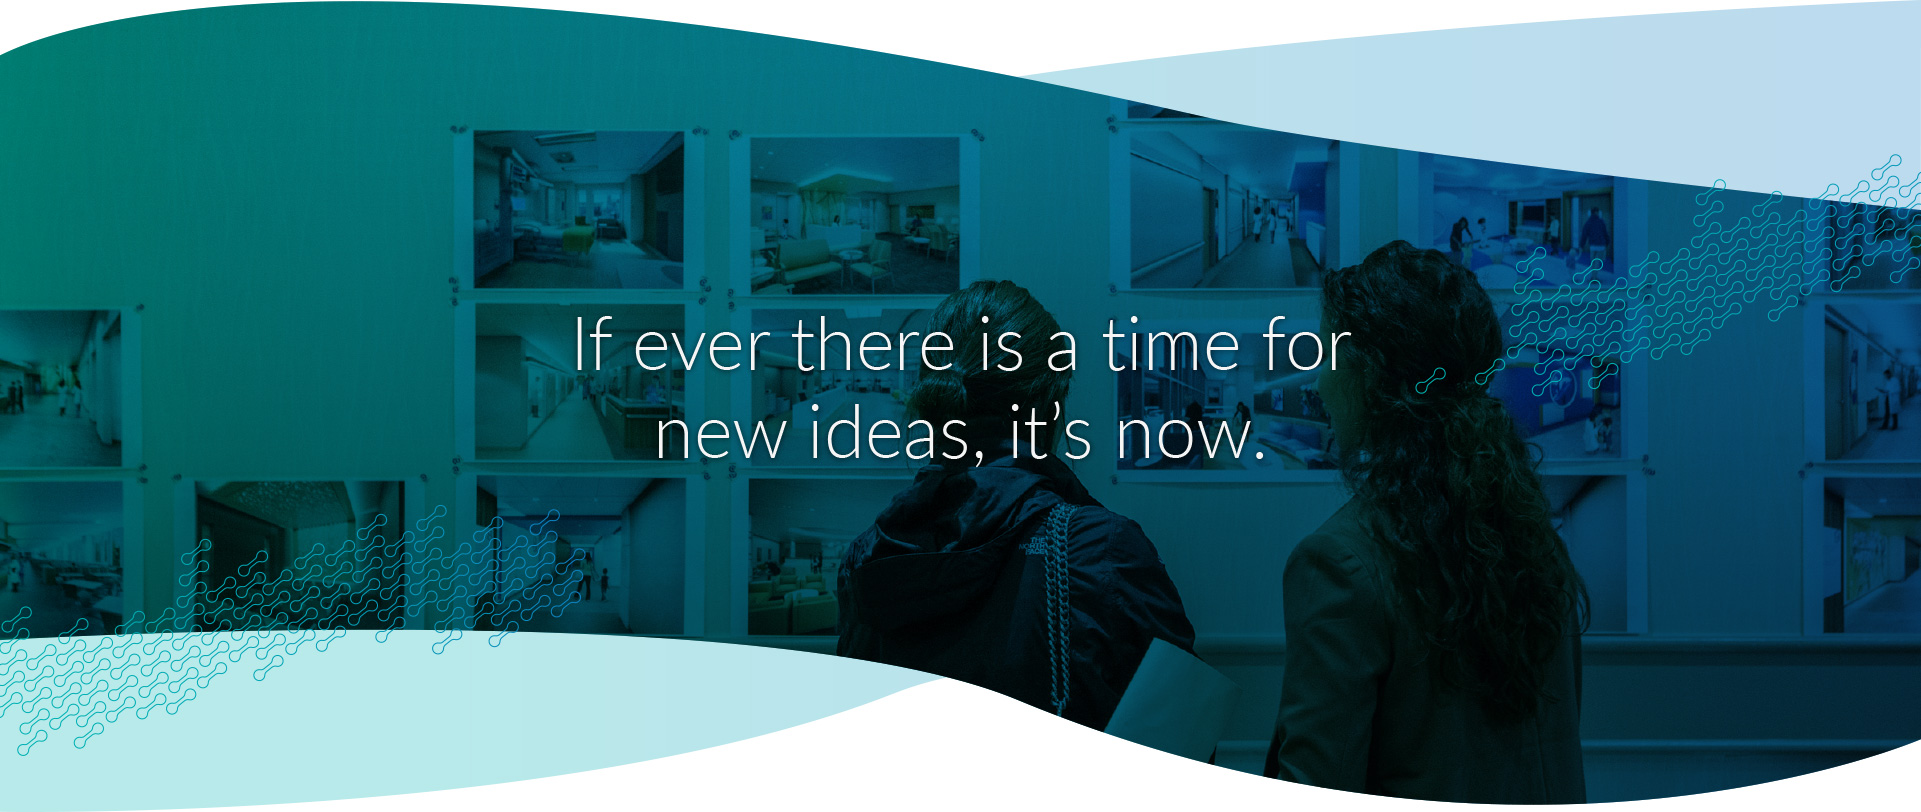 If ever there is a time for new ideas, it's now.